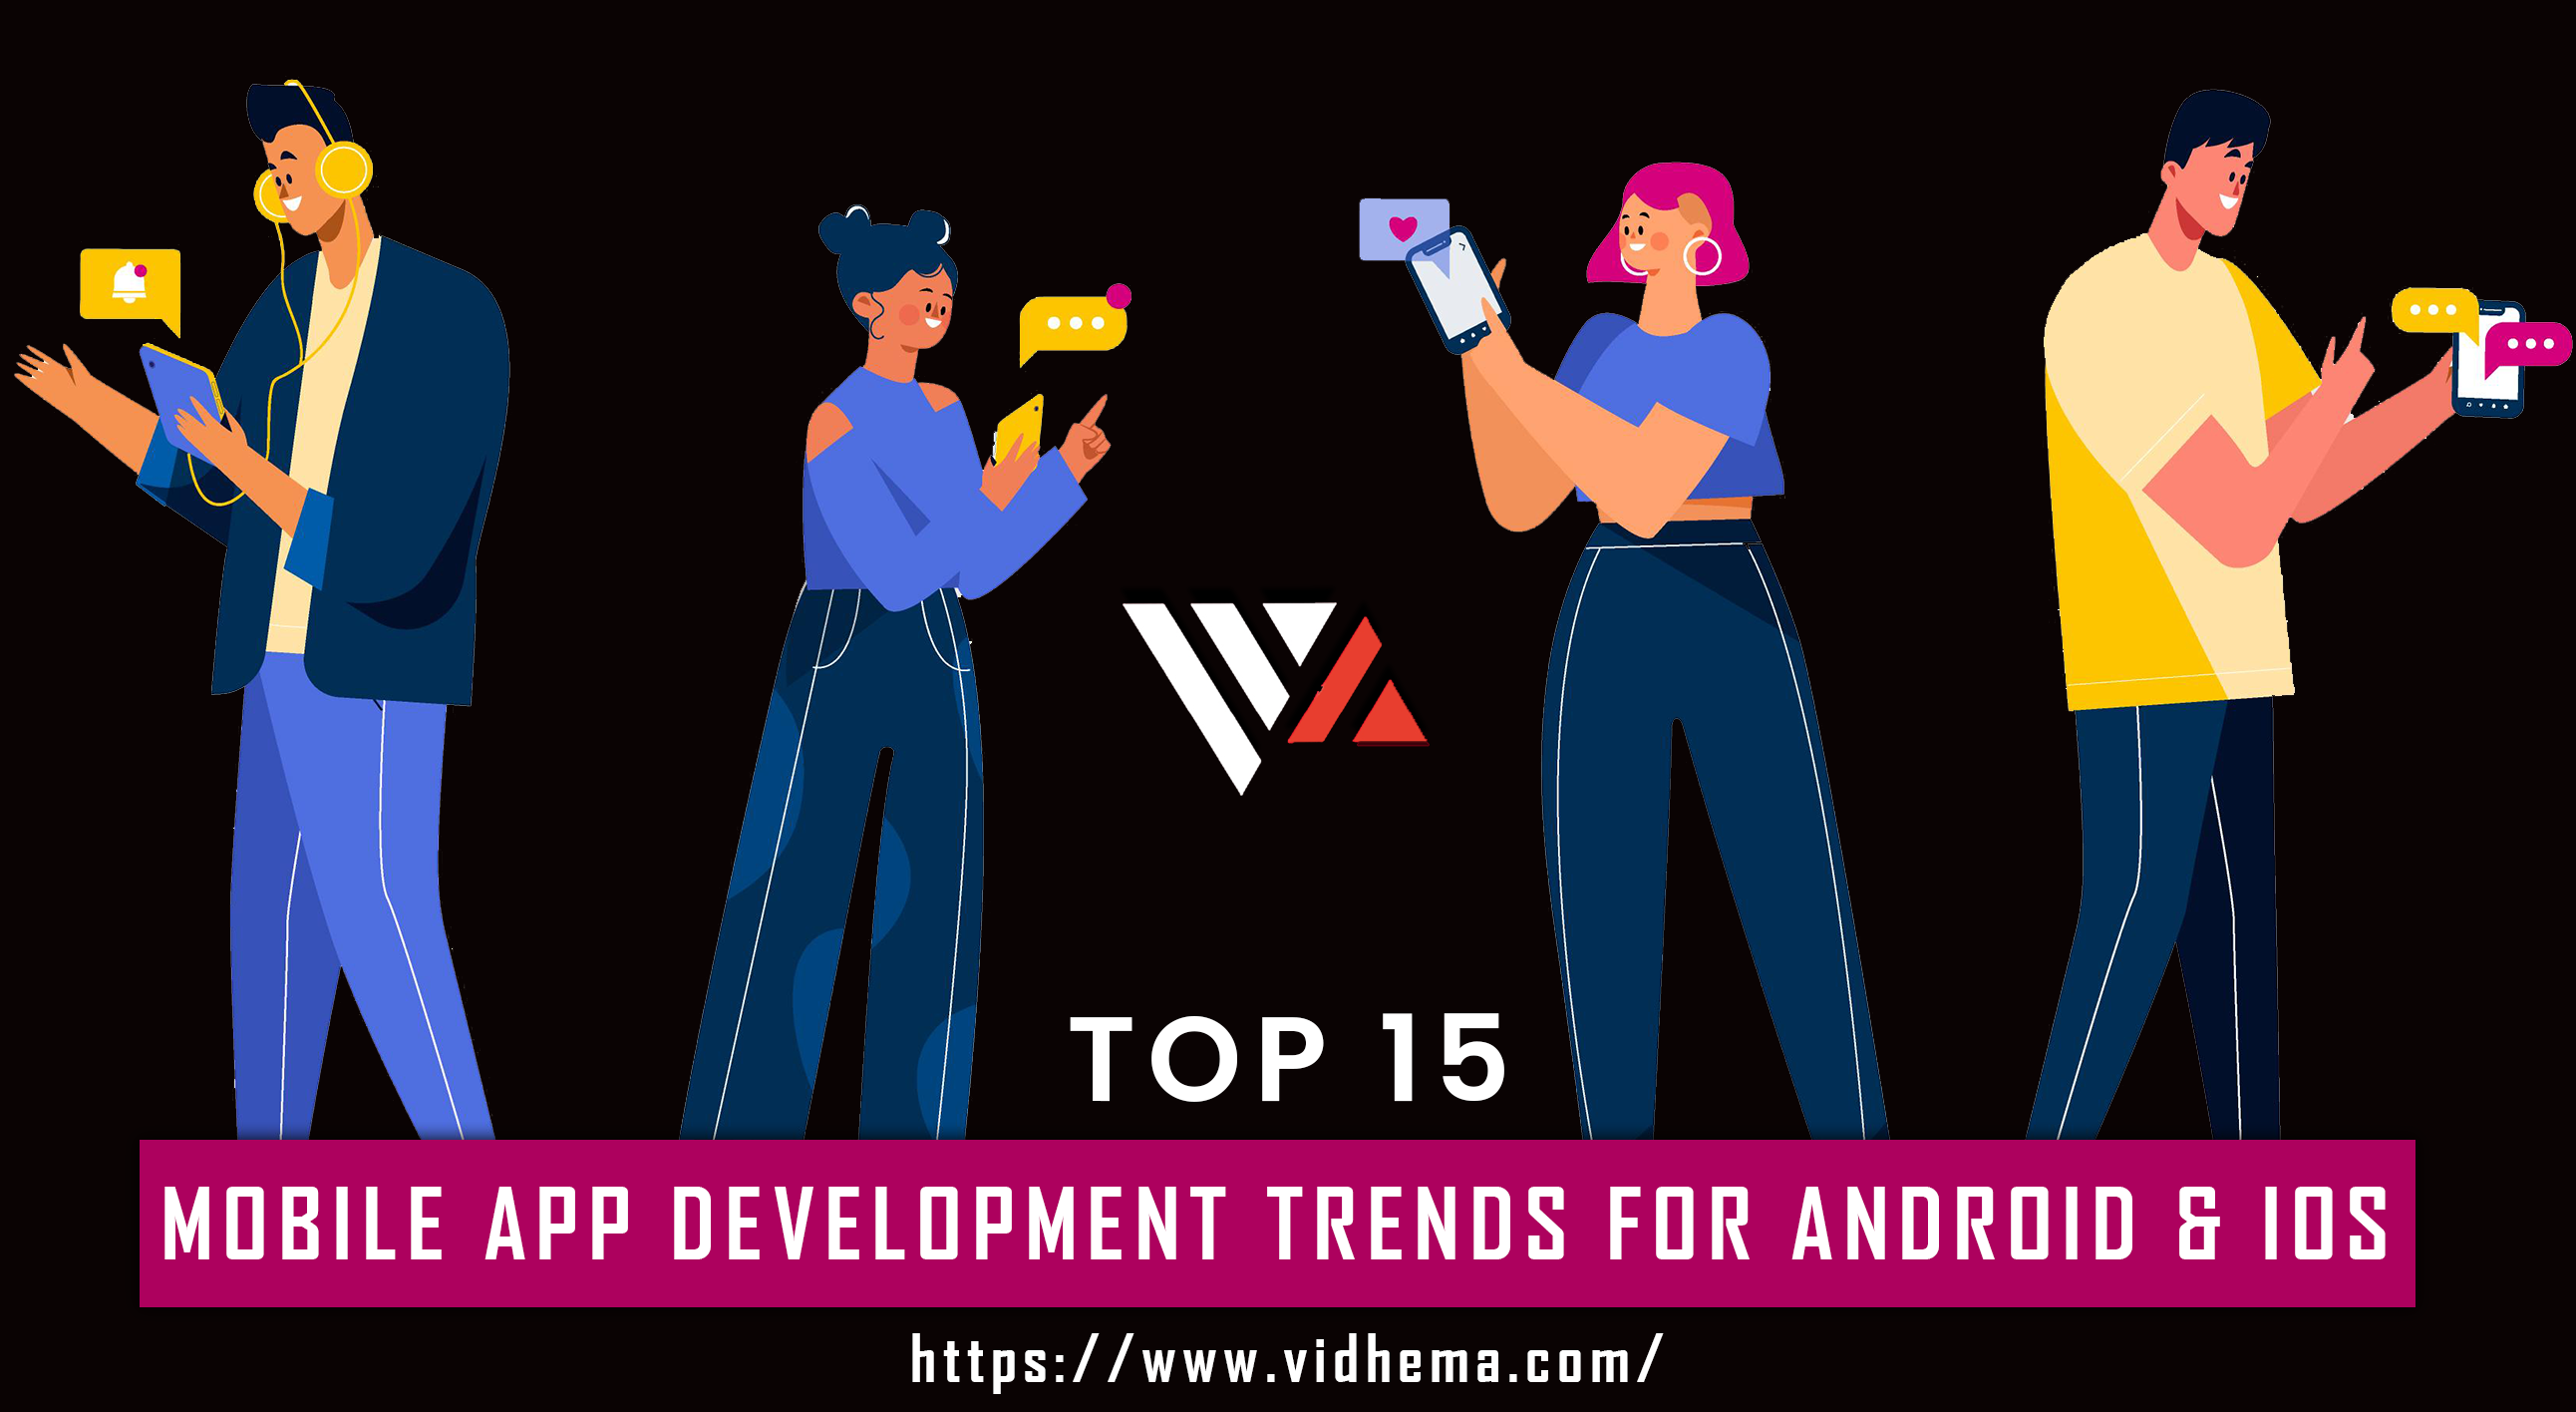 Top 15 Mobile App Development Trends for Android & iOS to Look Out in 2021